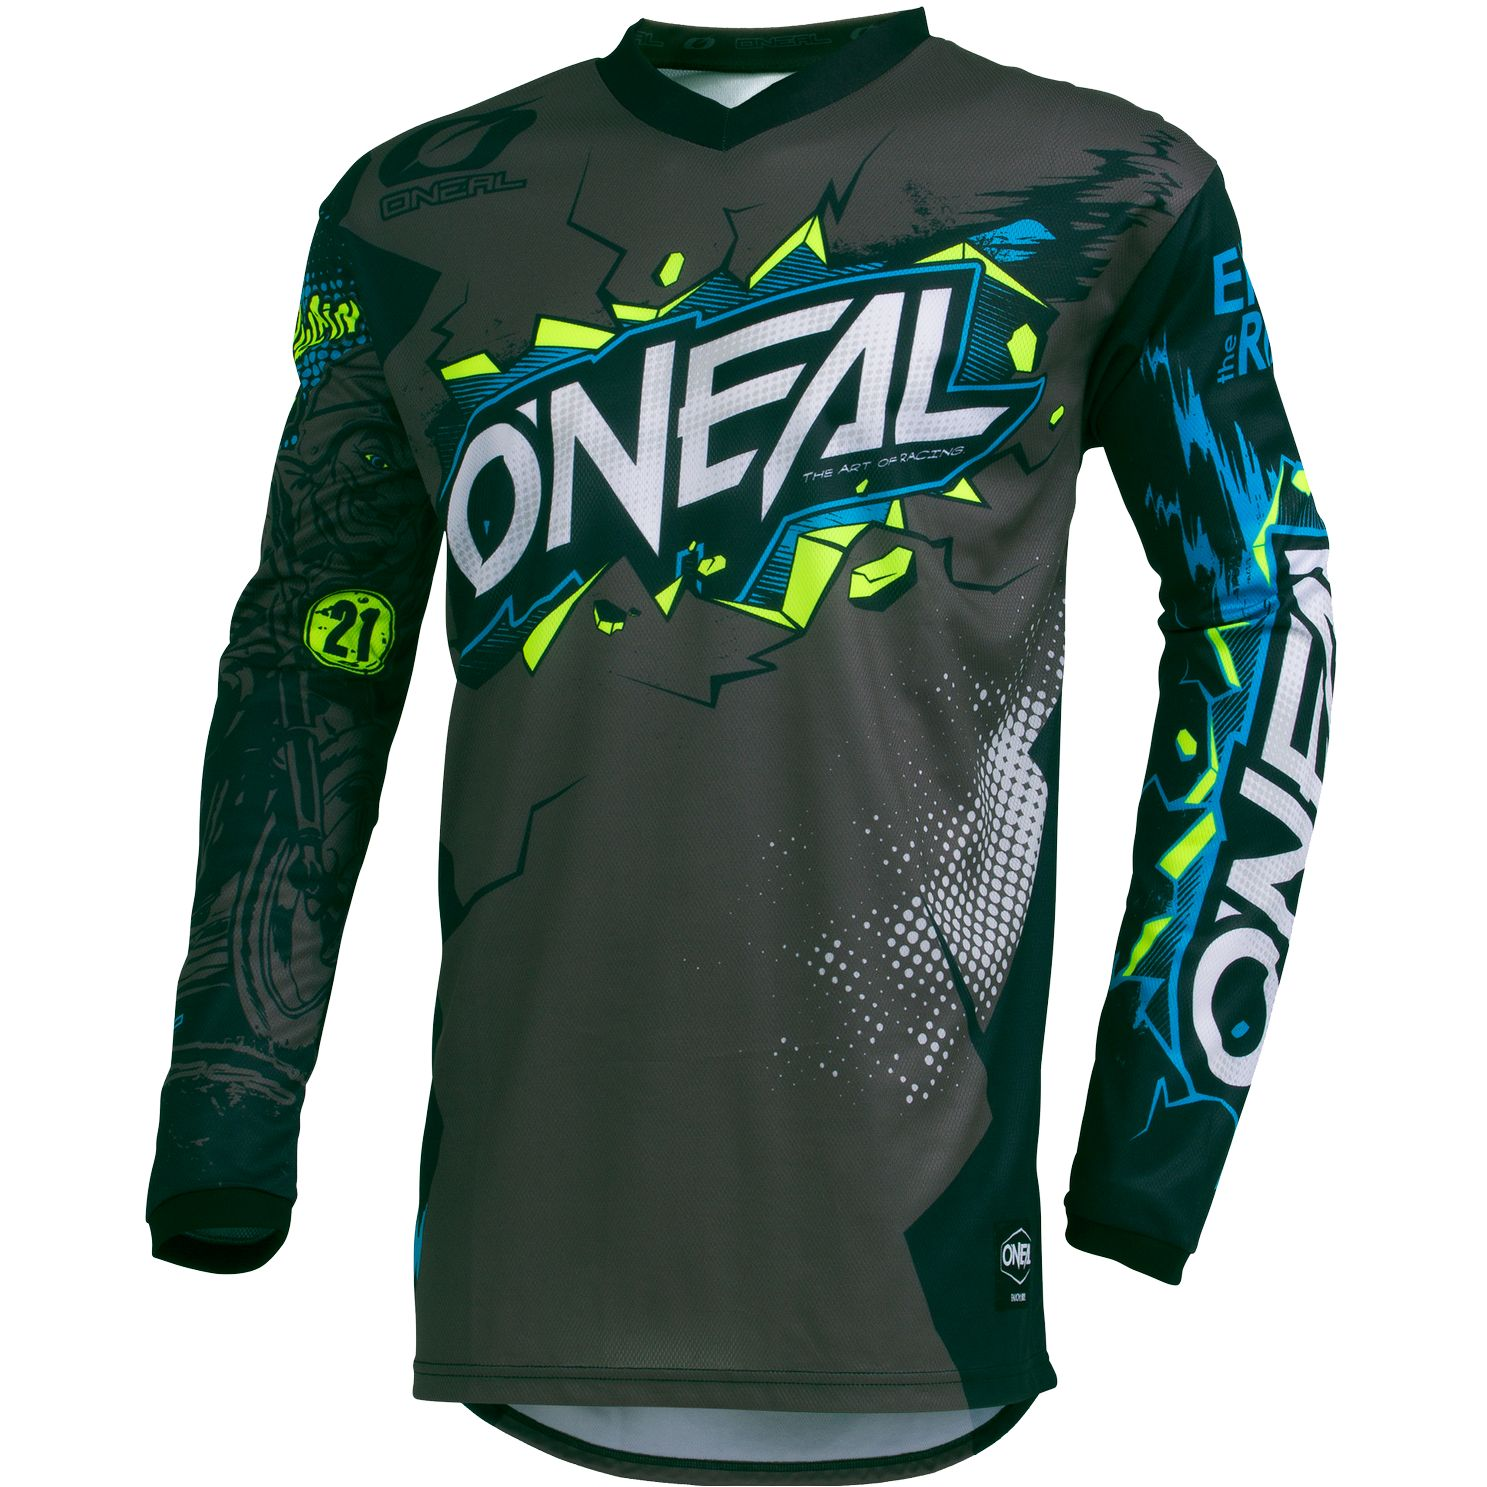 Maillot cross O'Neal ELEMENT - VILLAIN - GRAY 2020